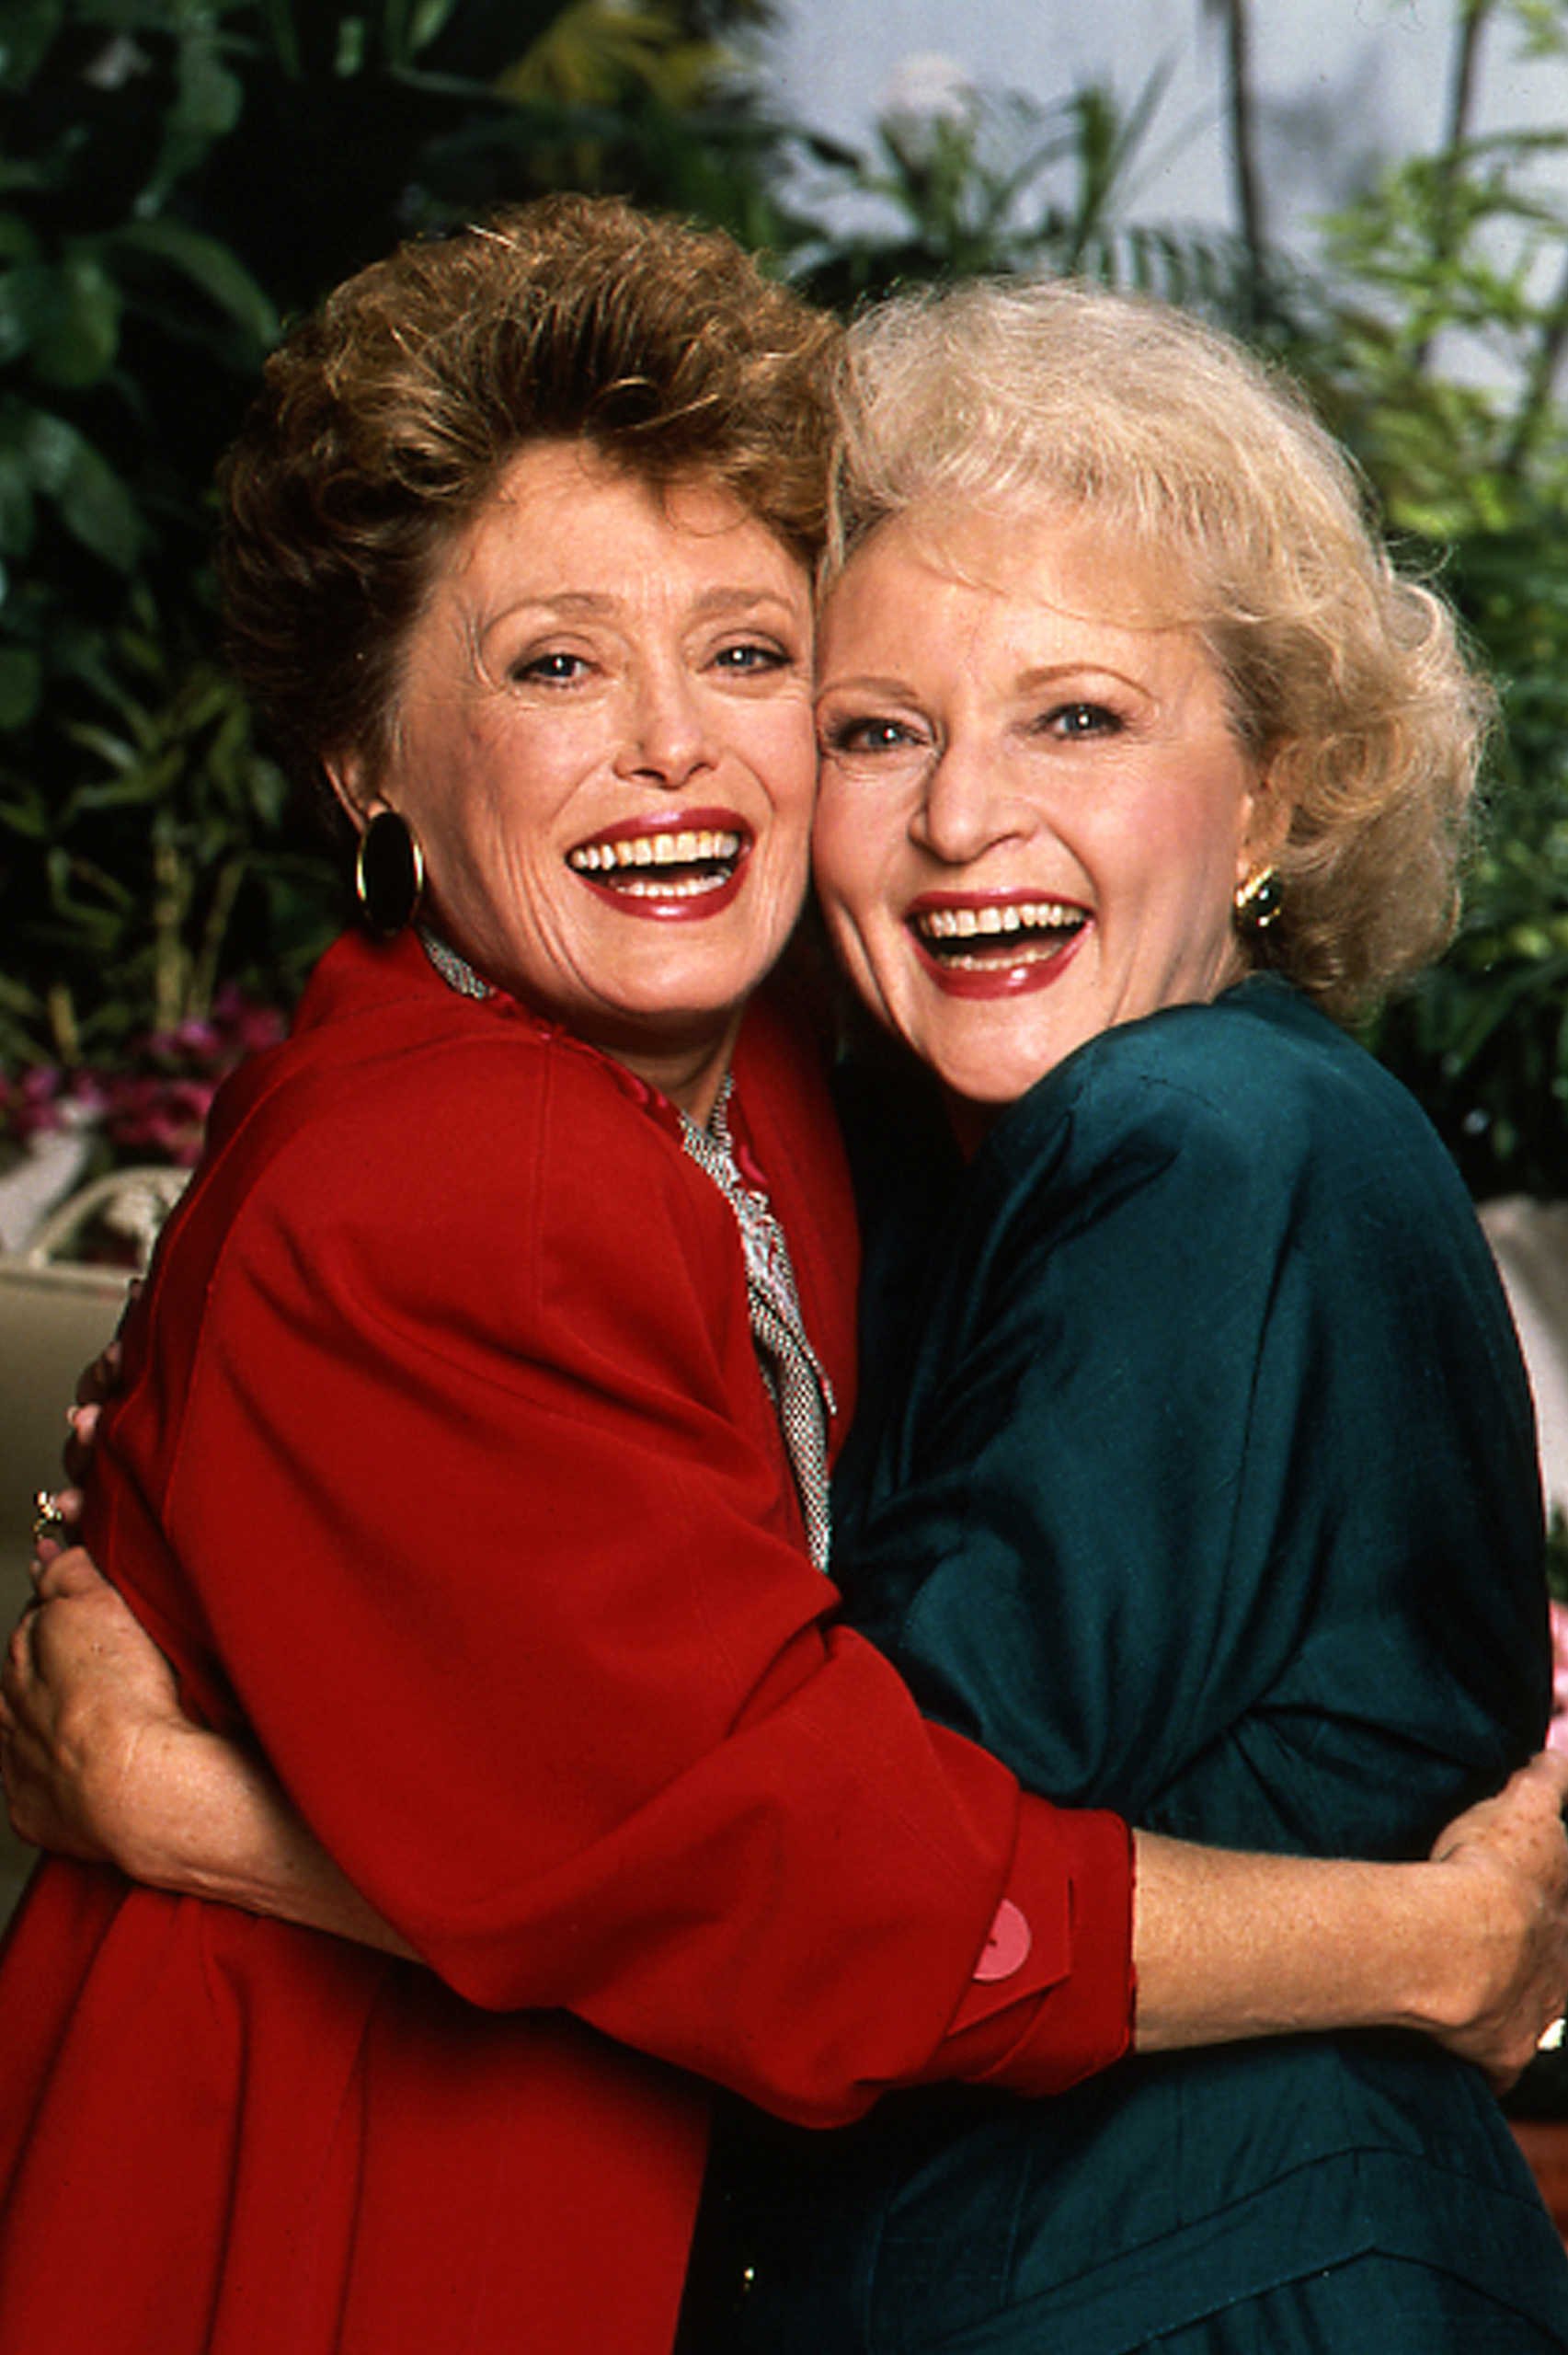 The Golden Girls Images Blanche Rose HD Wallpaper And Background Photos